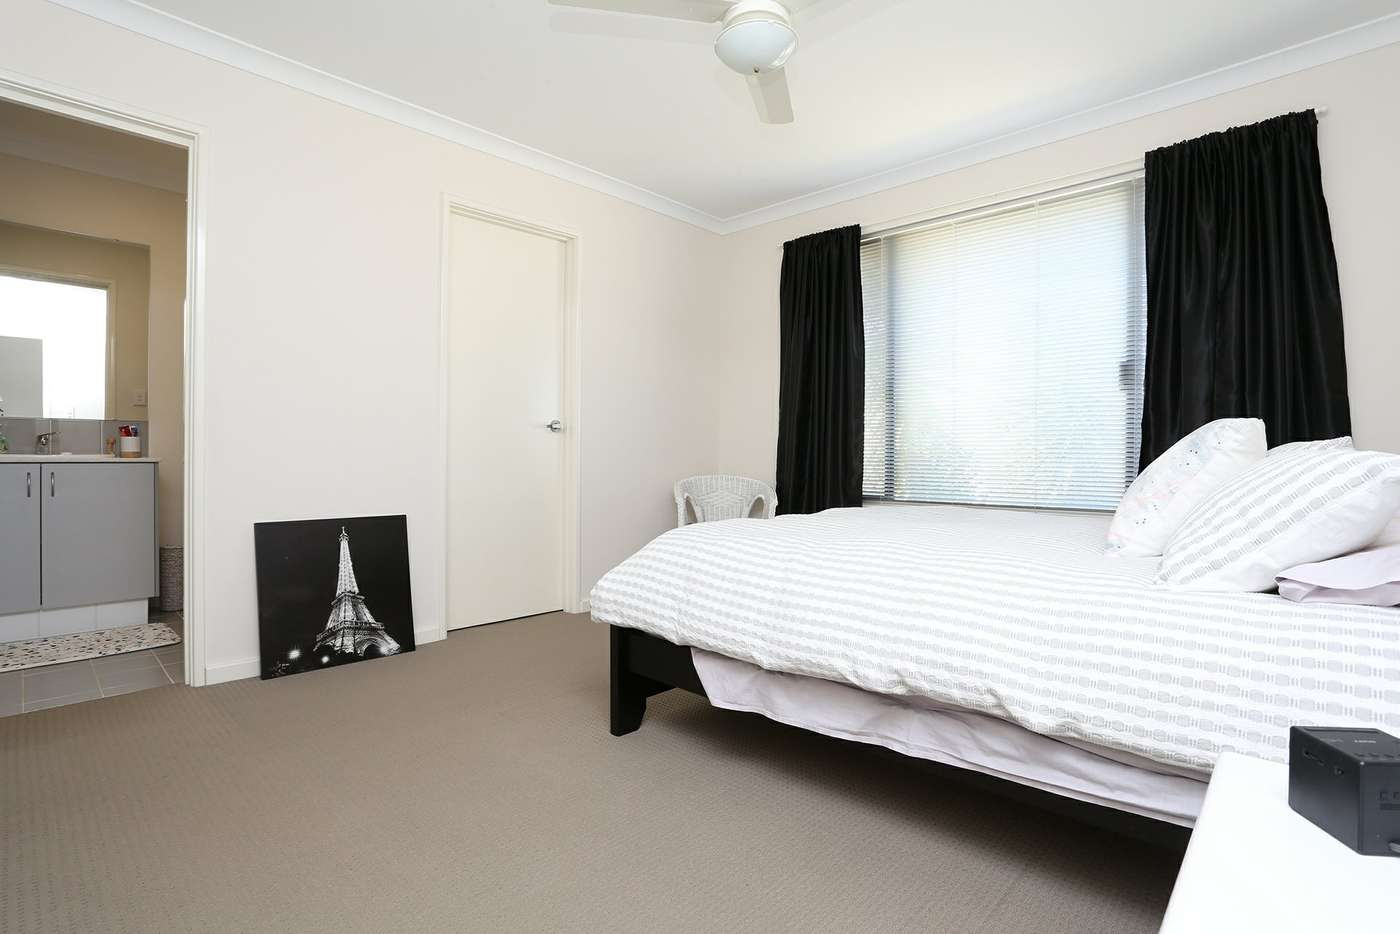 Sixth view of Homely house listing, 17 Santapola Approach, Alkimos WA 6038